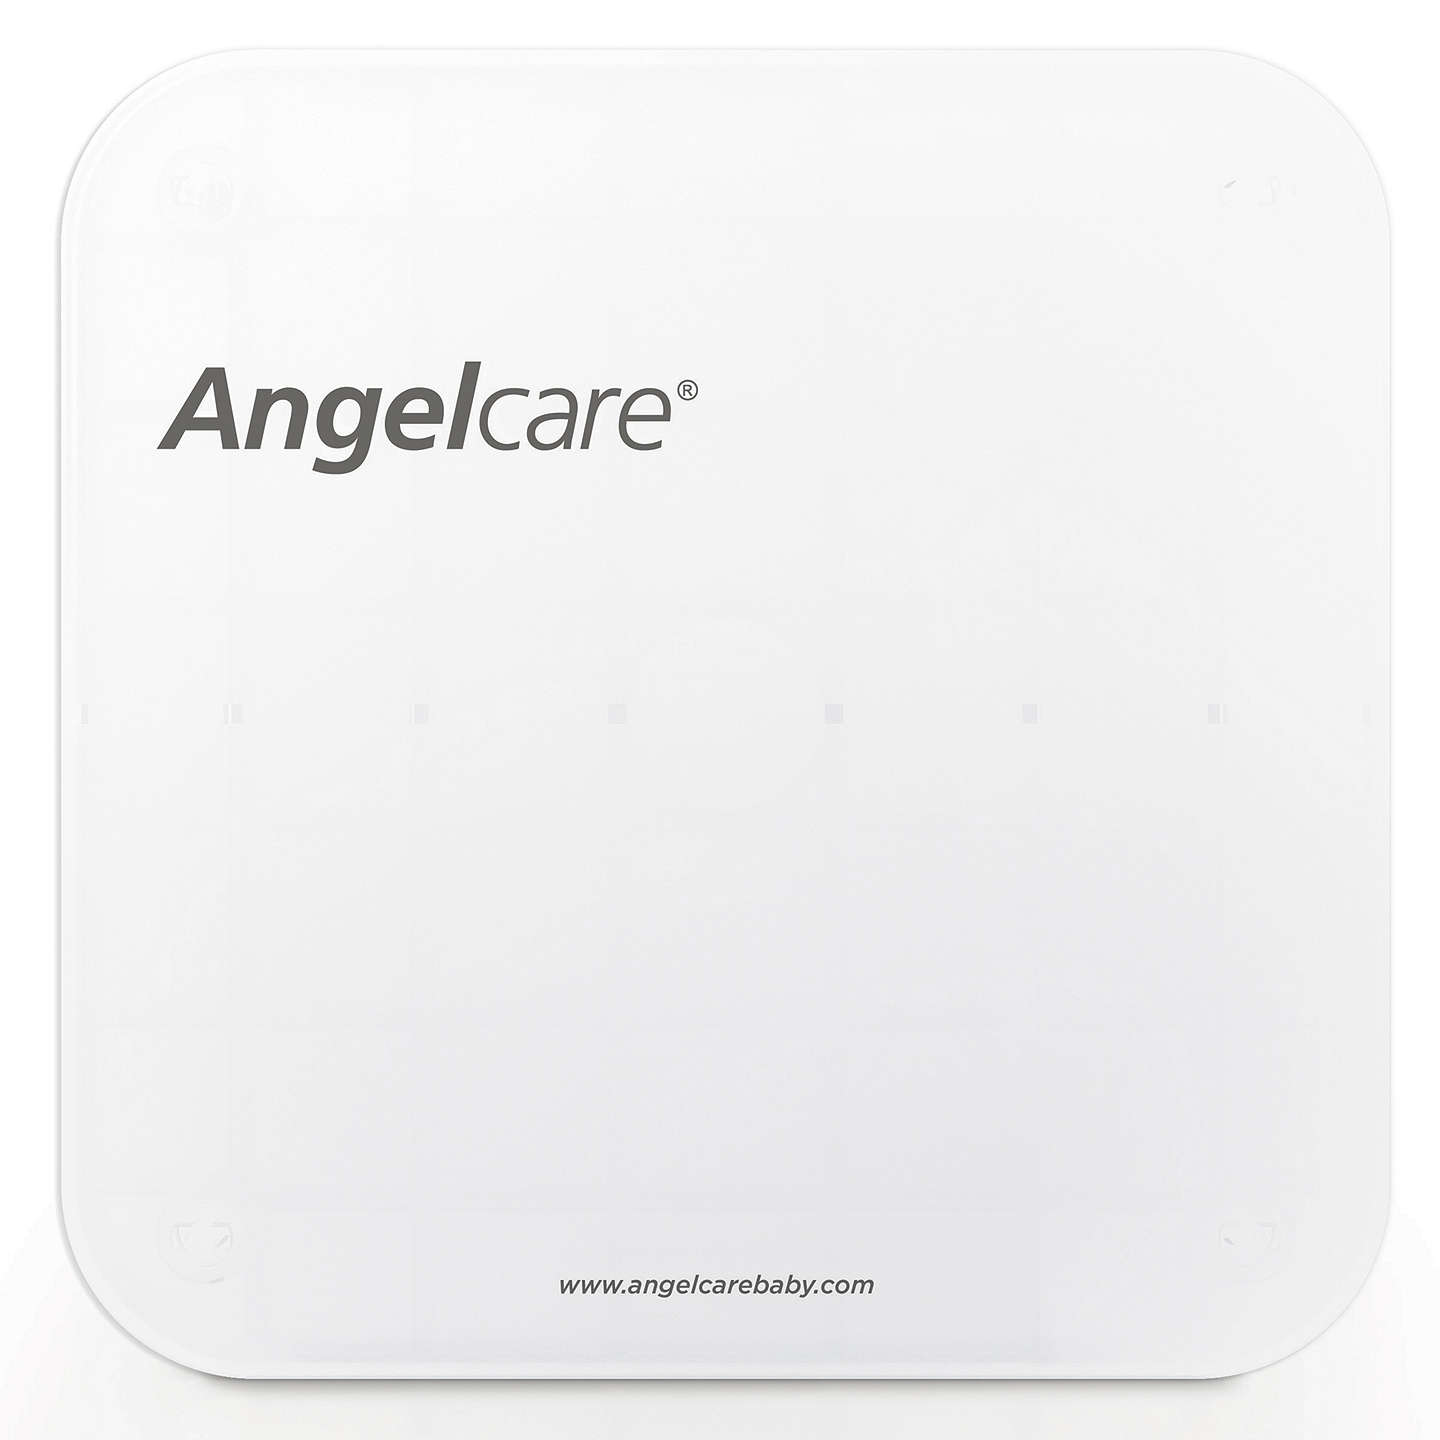 BuyAngelcare Movement and Sound Monitor AC401 Online at johnlewis.com